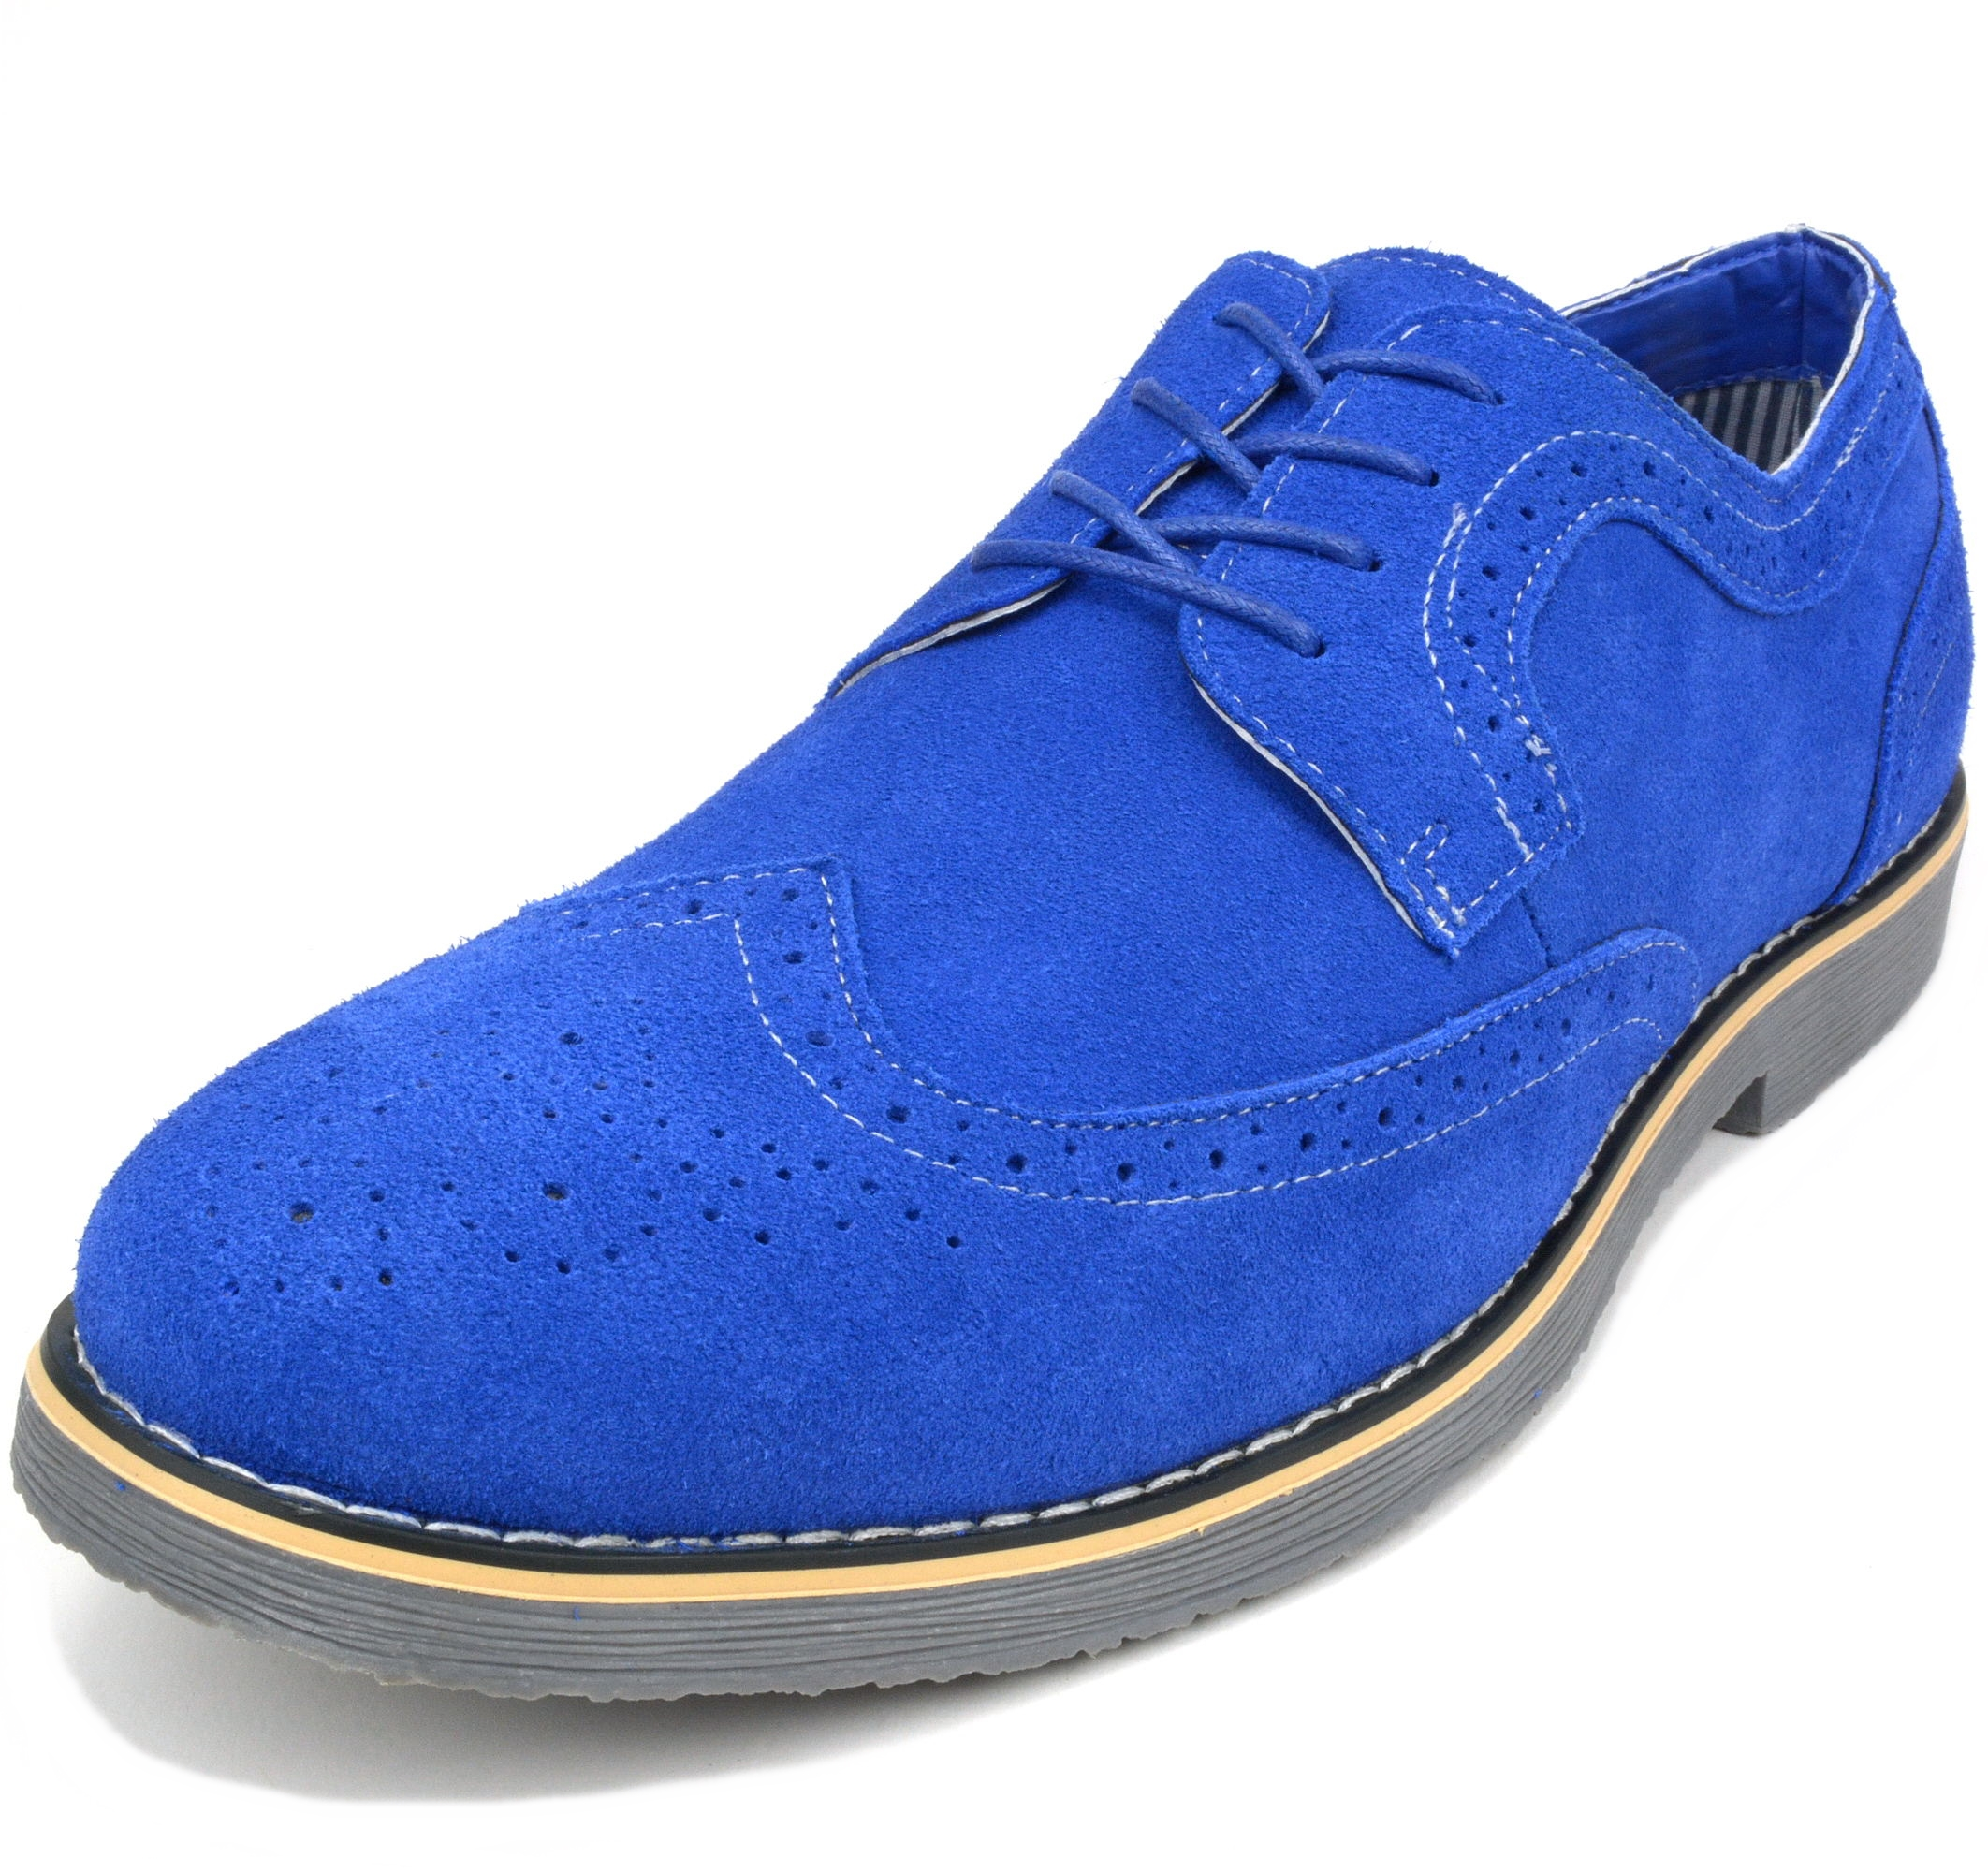 Alpine-Swiss-Beau-Mens-Dress-Shoes-Genuine-Suede-Wing-Tip-Brogue-Lace-Up-Oxfords thumbnail 31